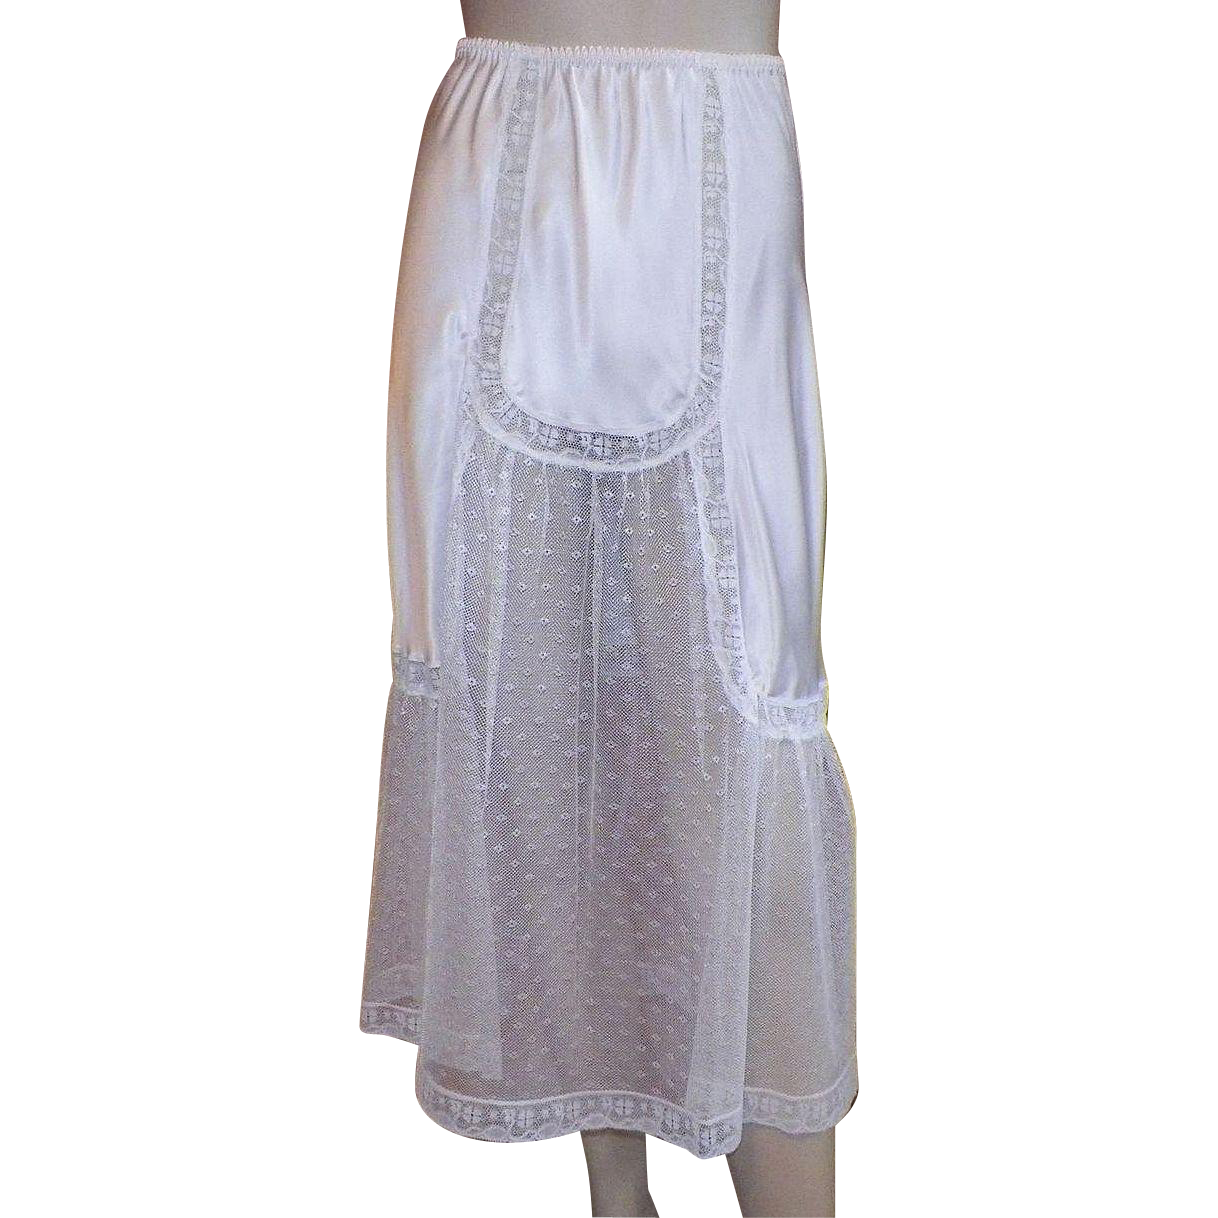 1980's Guy Laroche White Silk Half Slip / Skirt With Netting